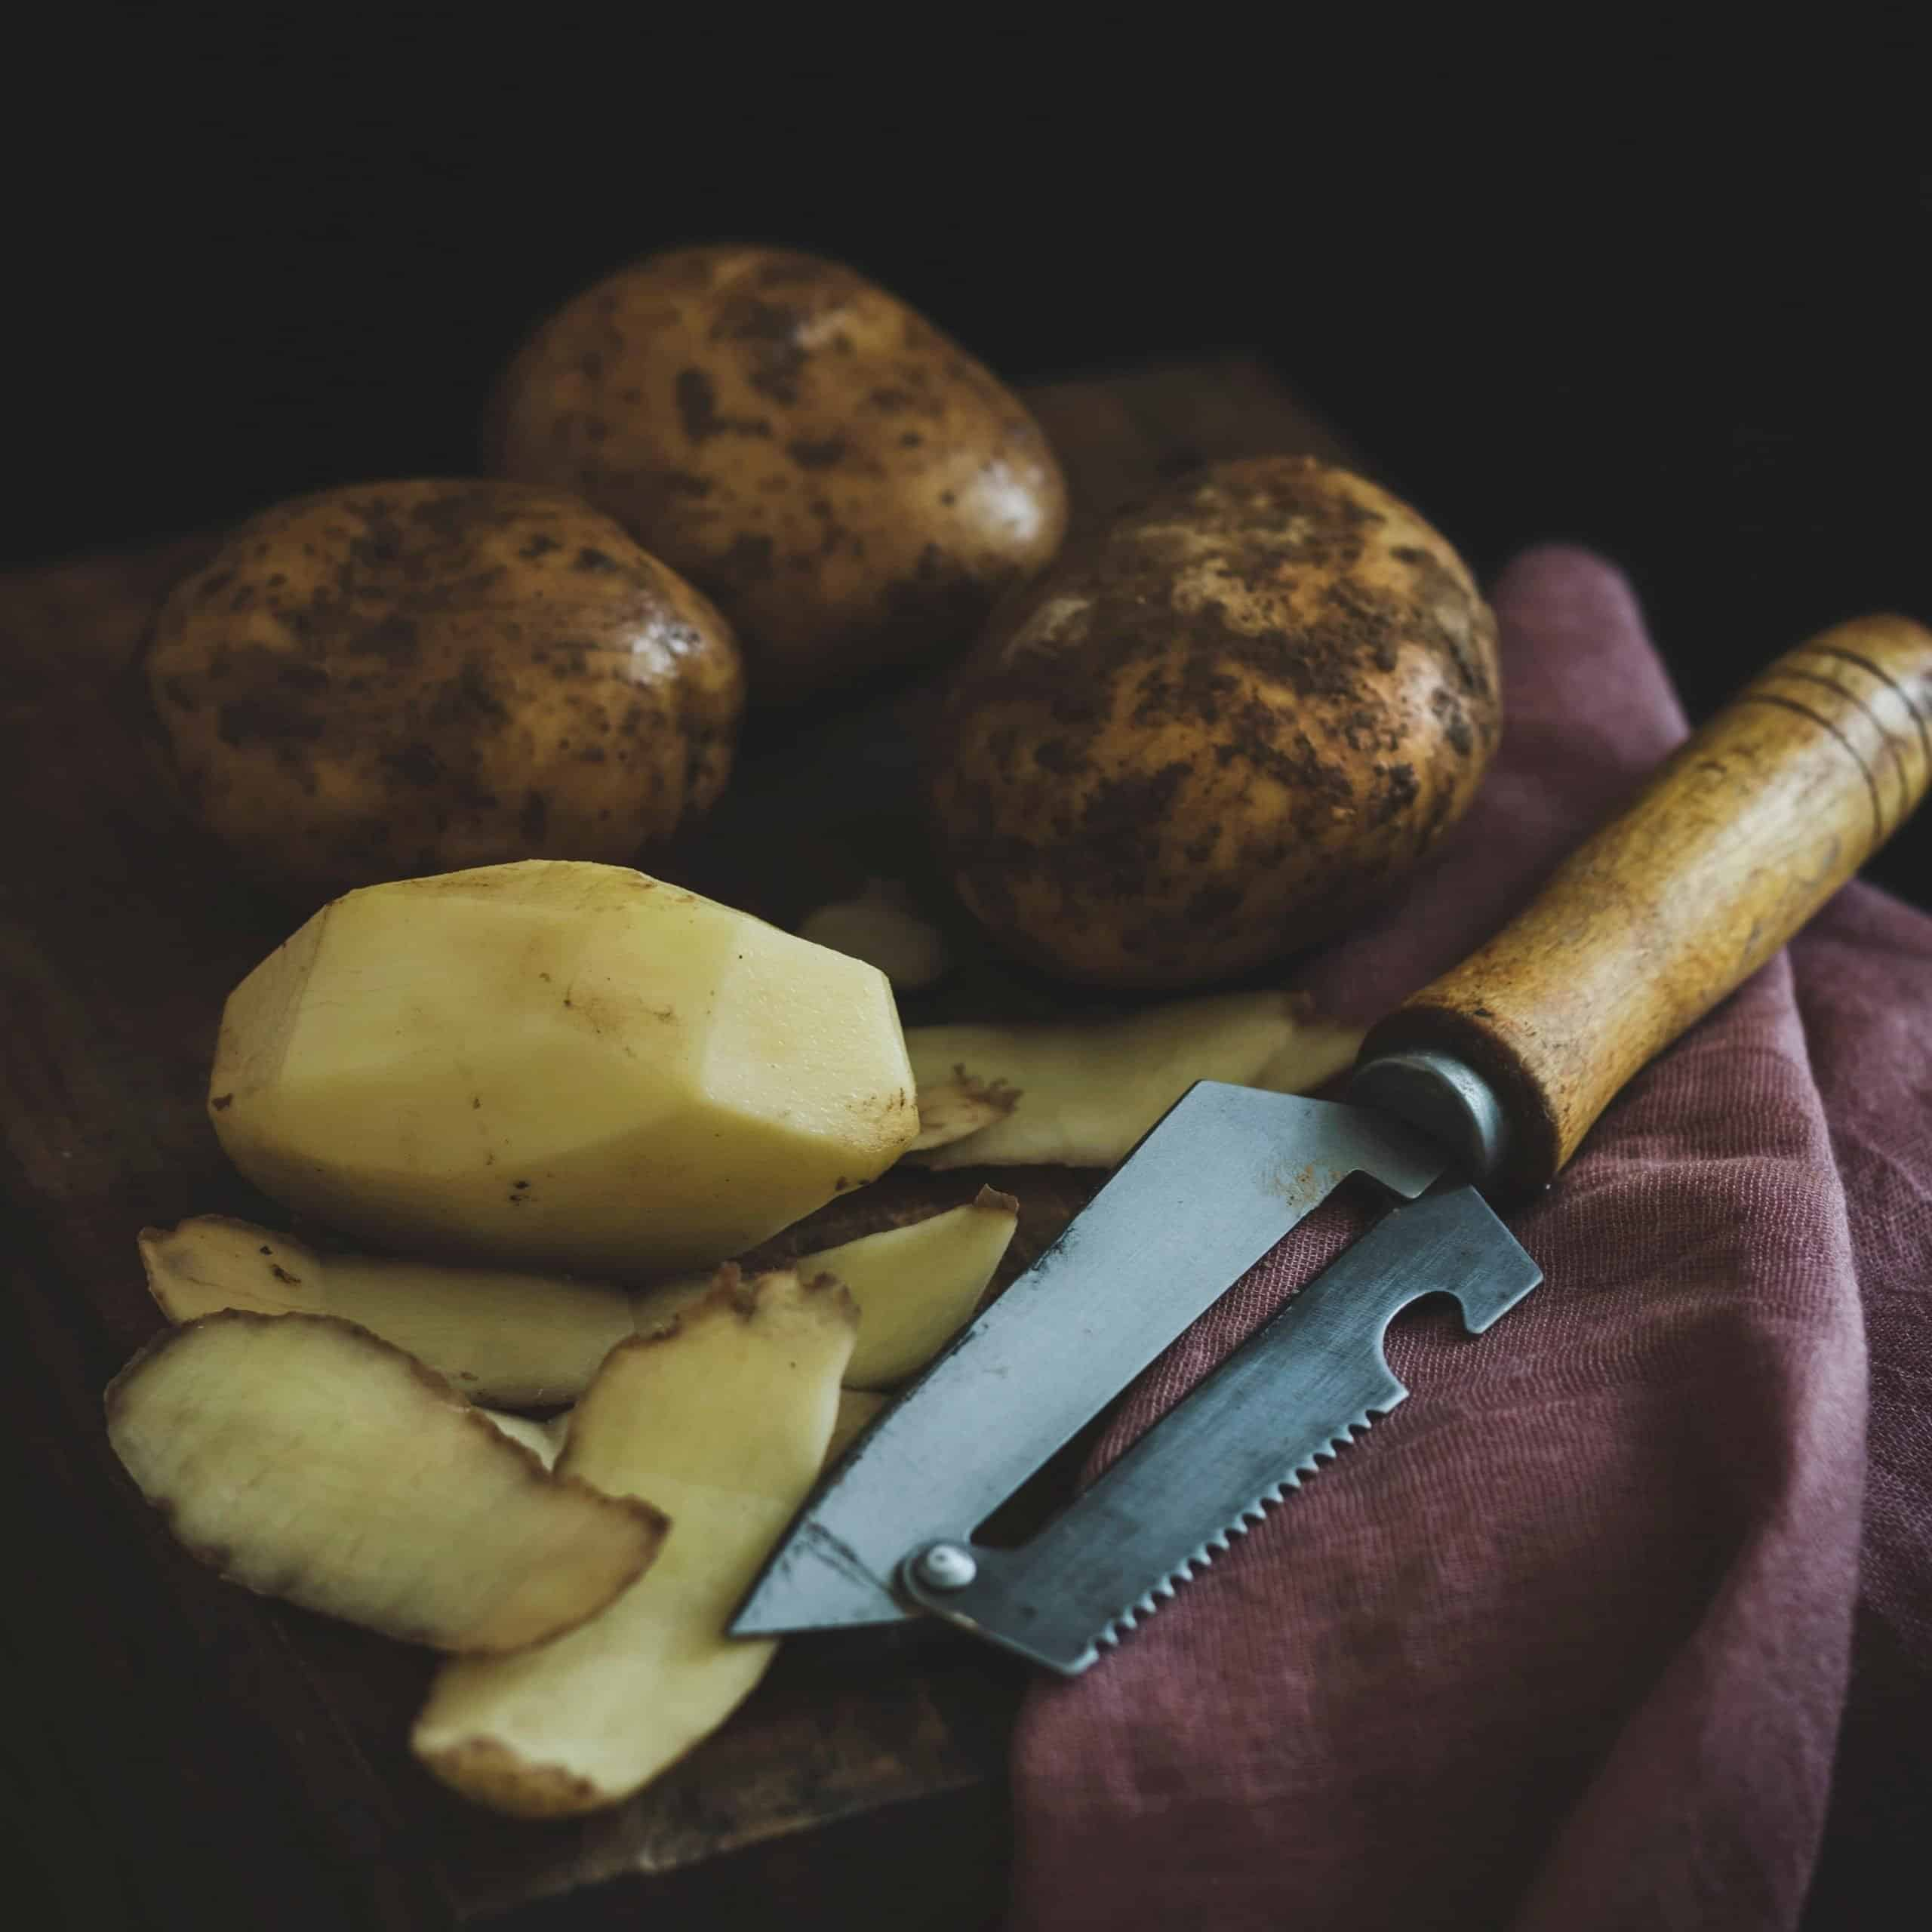 potatoes and knife representing starchy carbohydrate